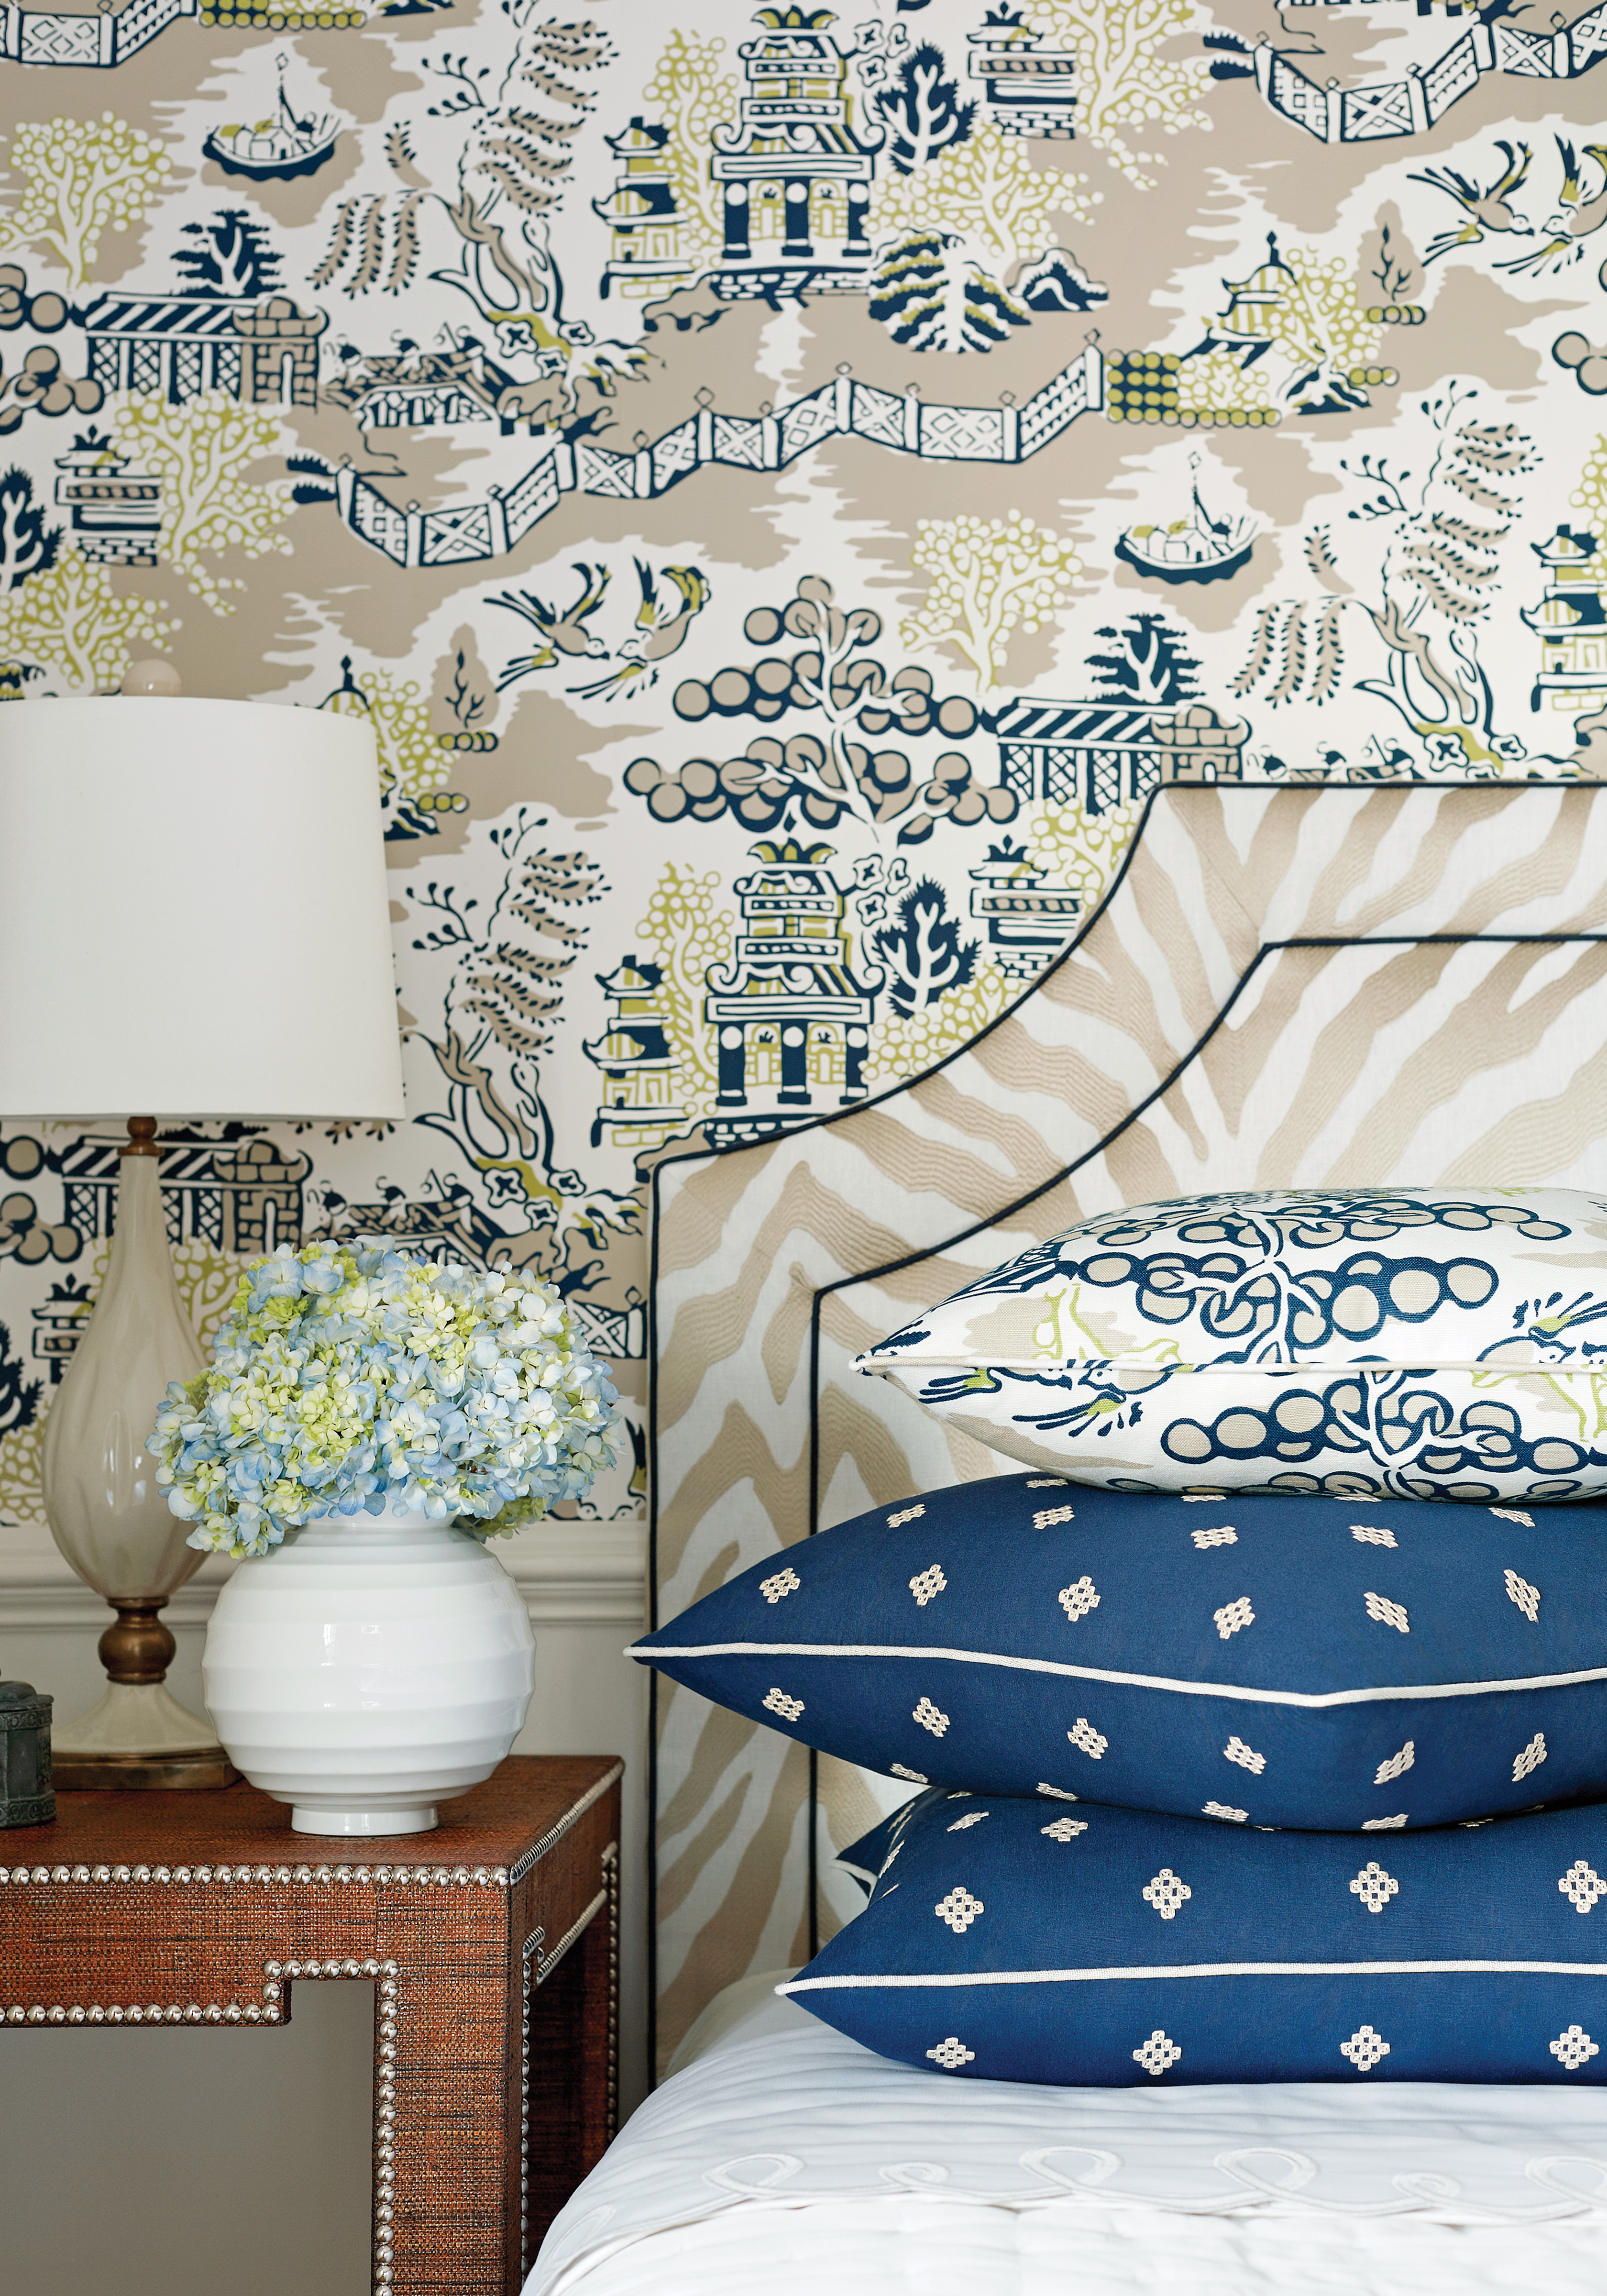 new wallpaper The new collection from Thibaut is sure to be a hit 3360x4800